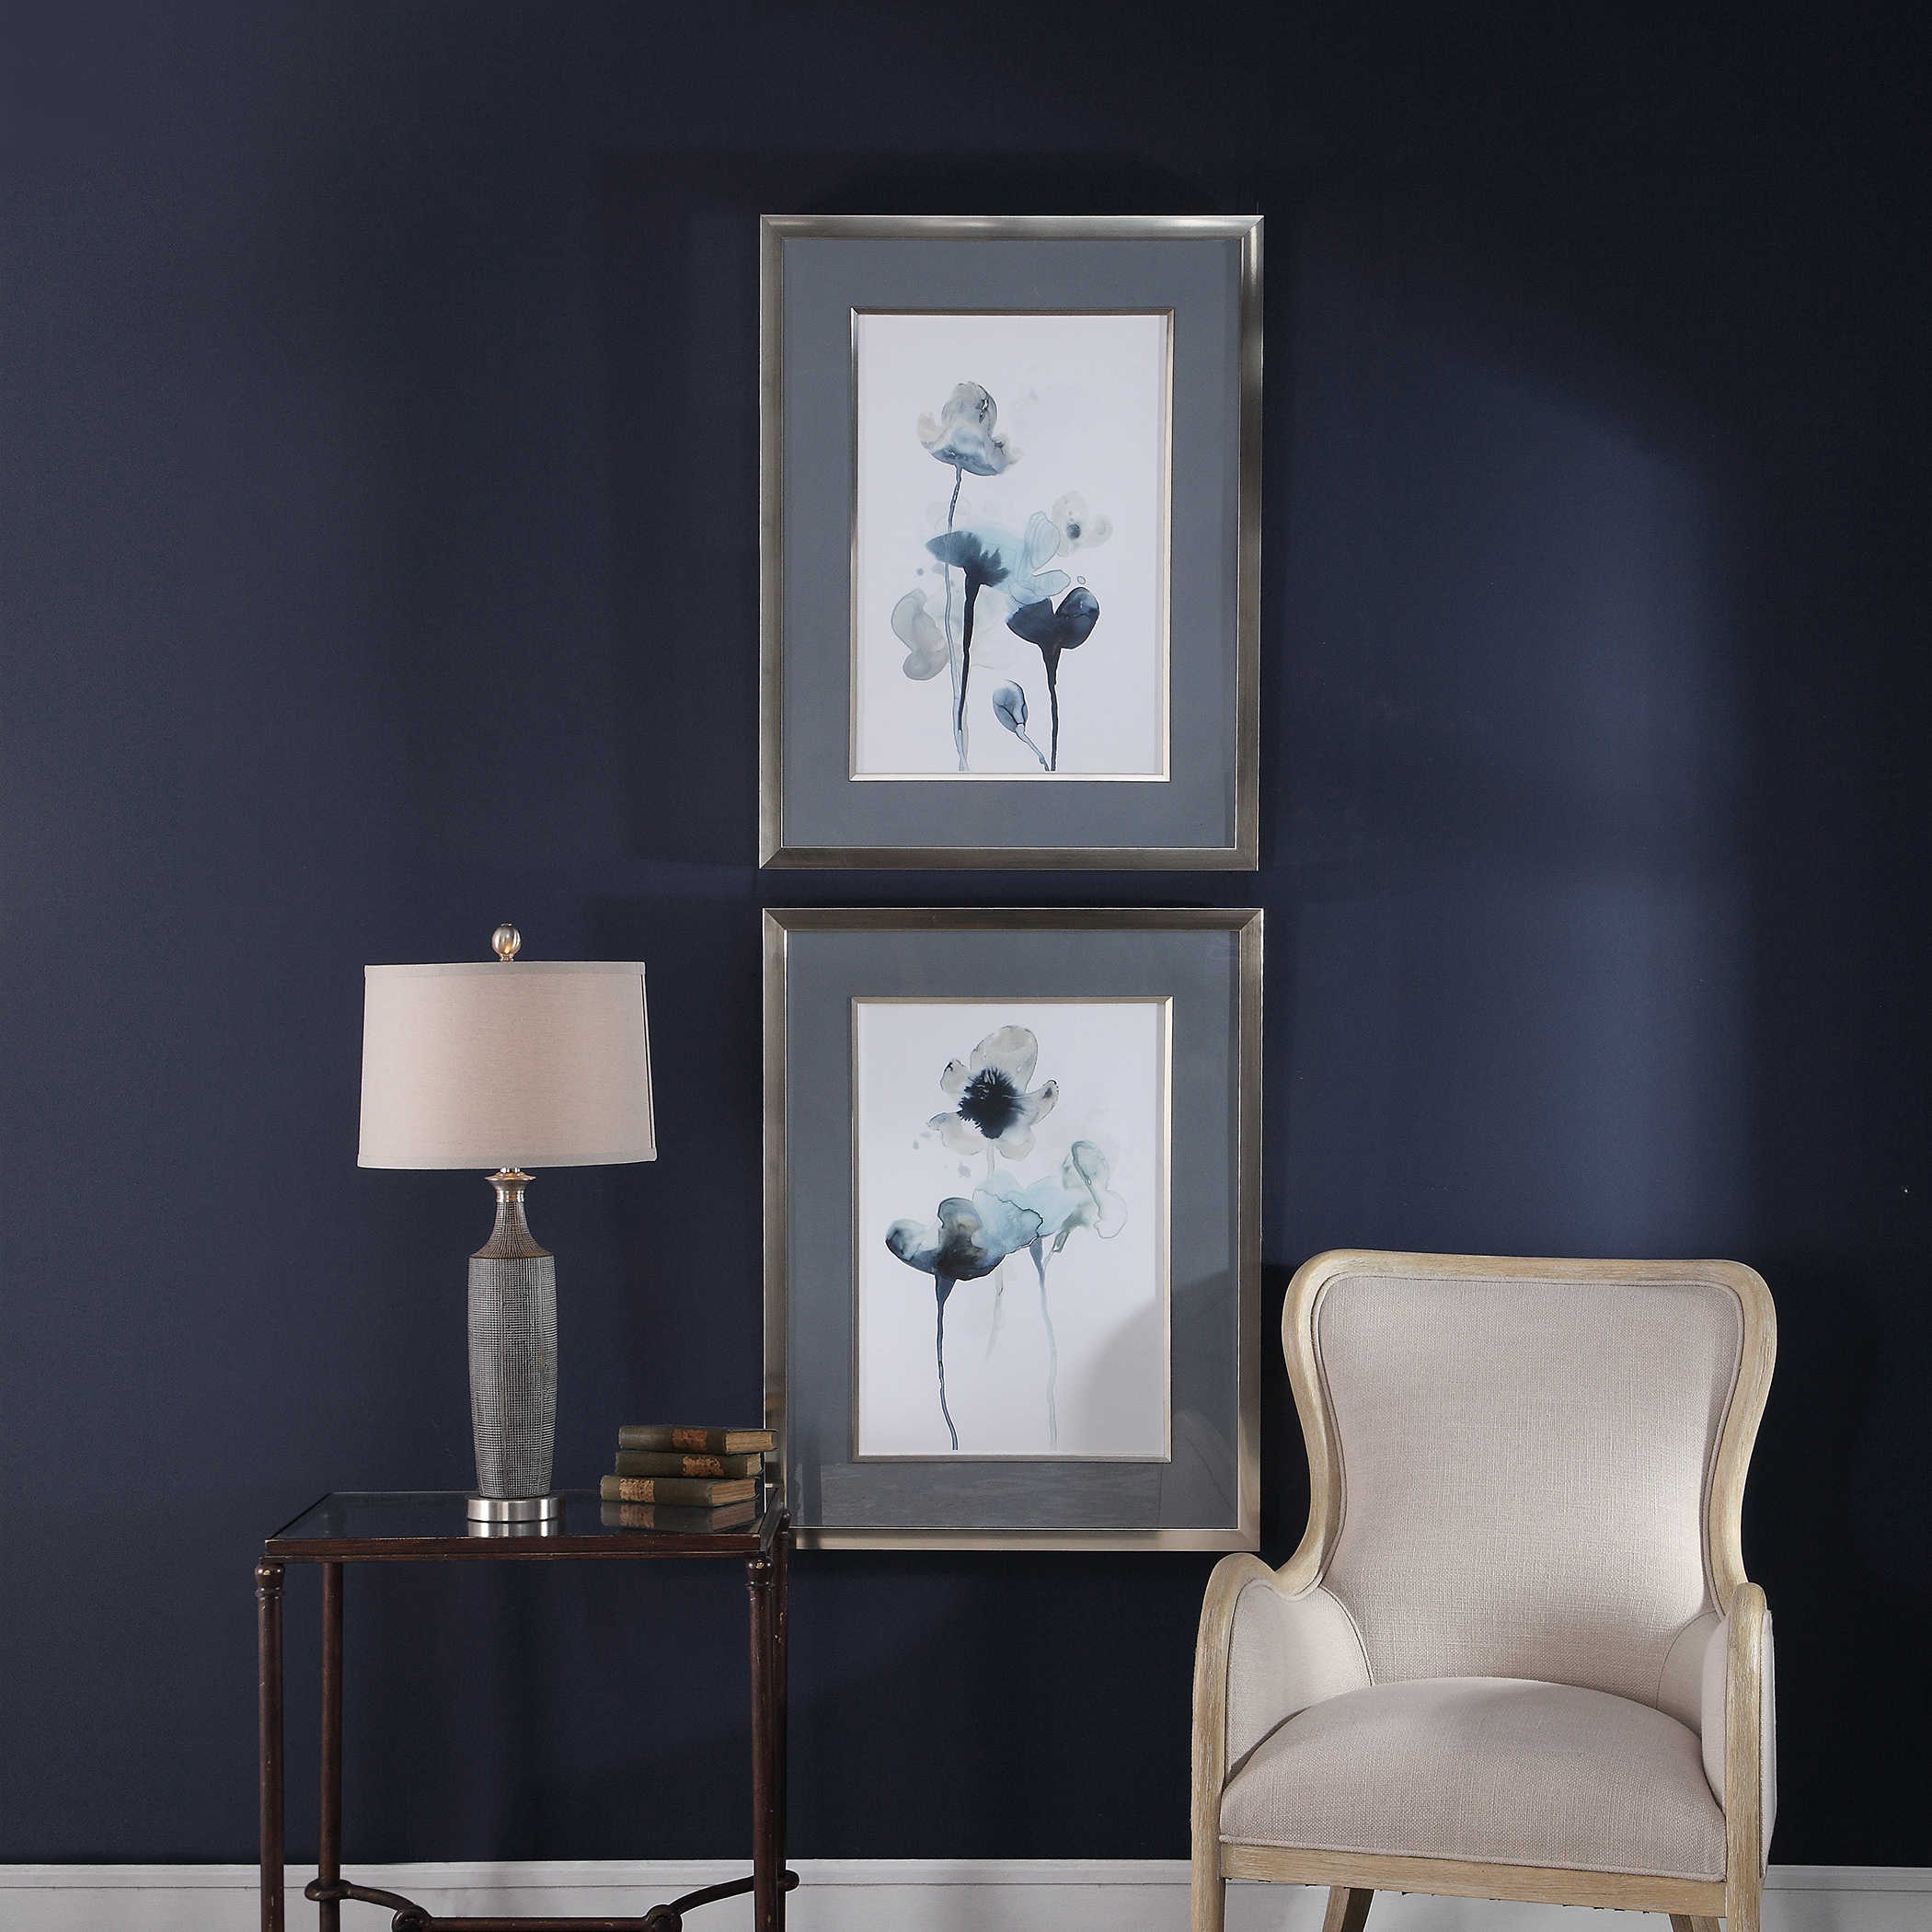 wishing chair photo frame wood arm with cushion uttermost accent furniture mirrors wall decor clocks lamps art 33688 jpg